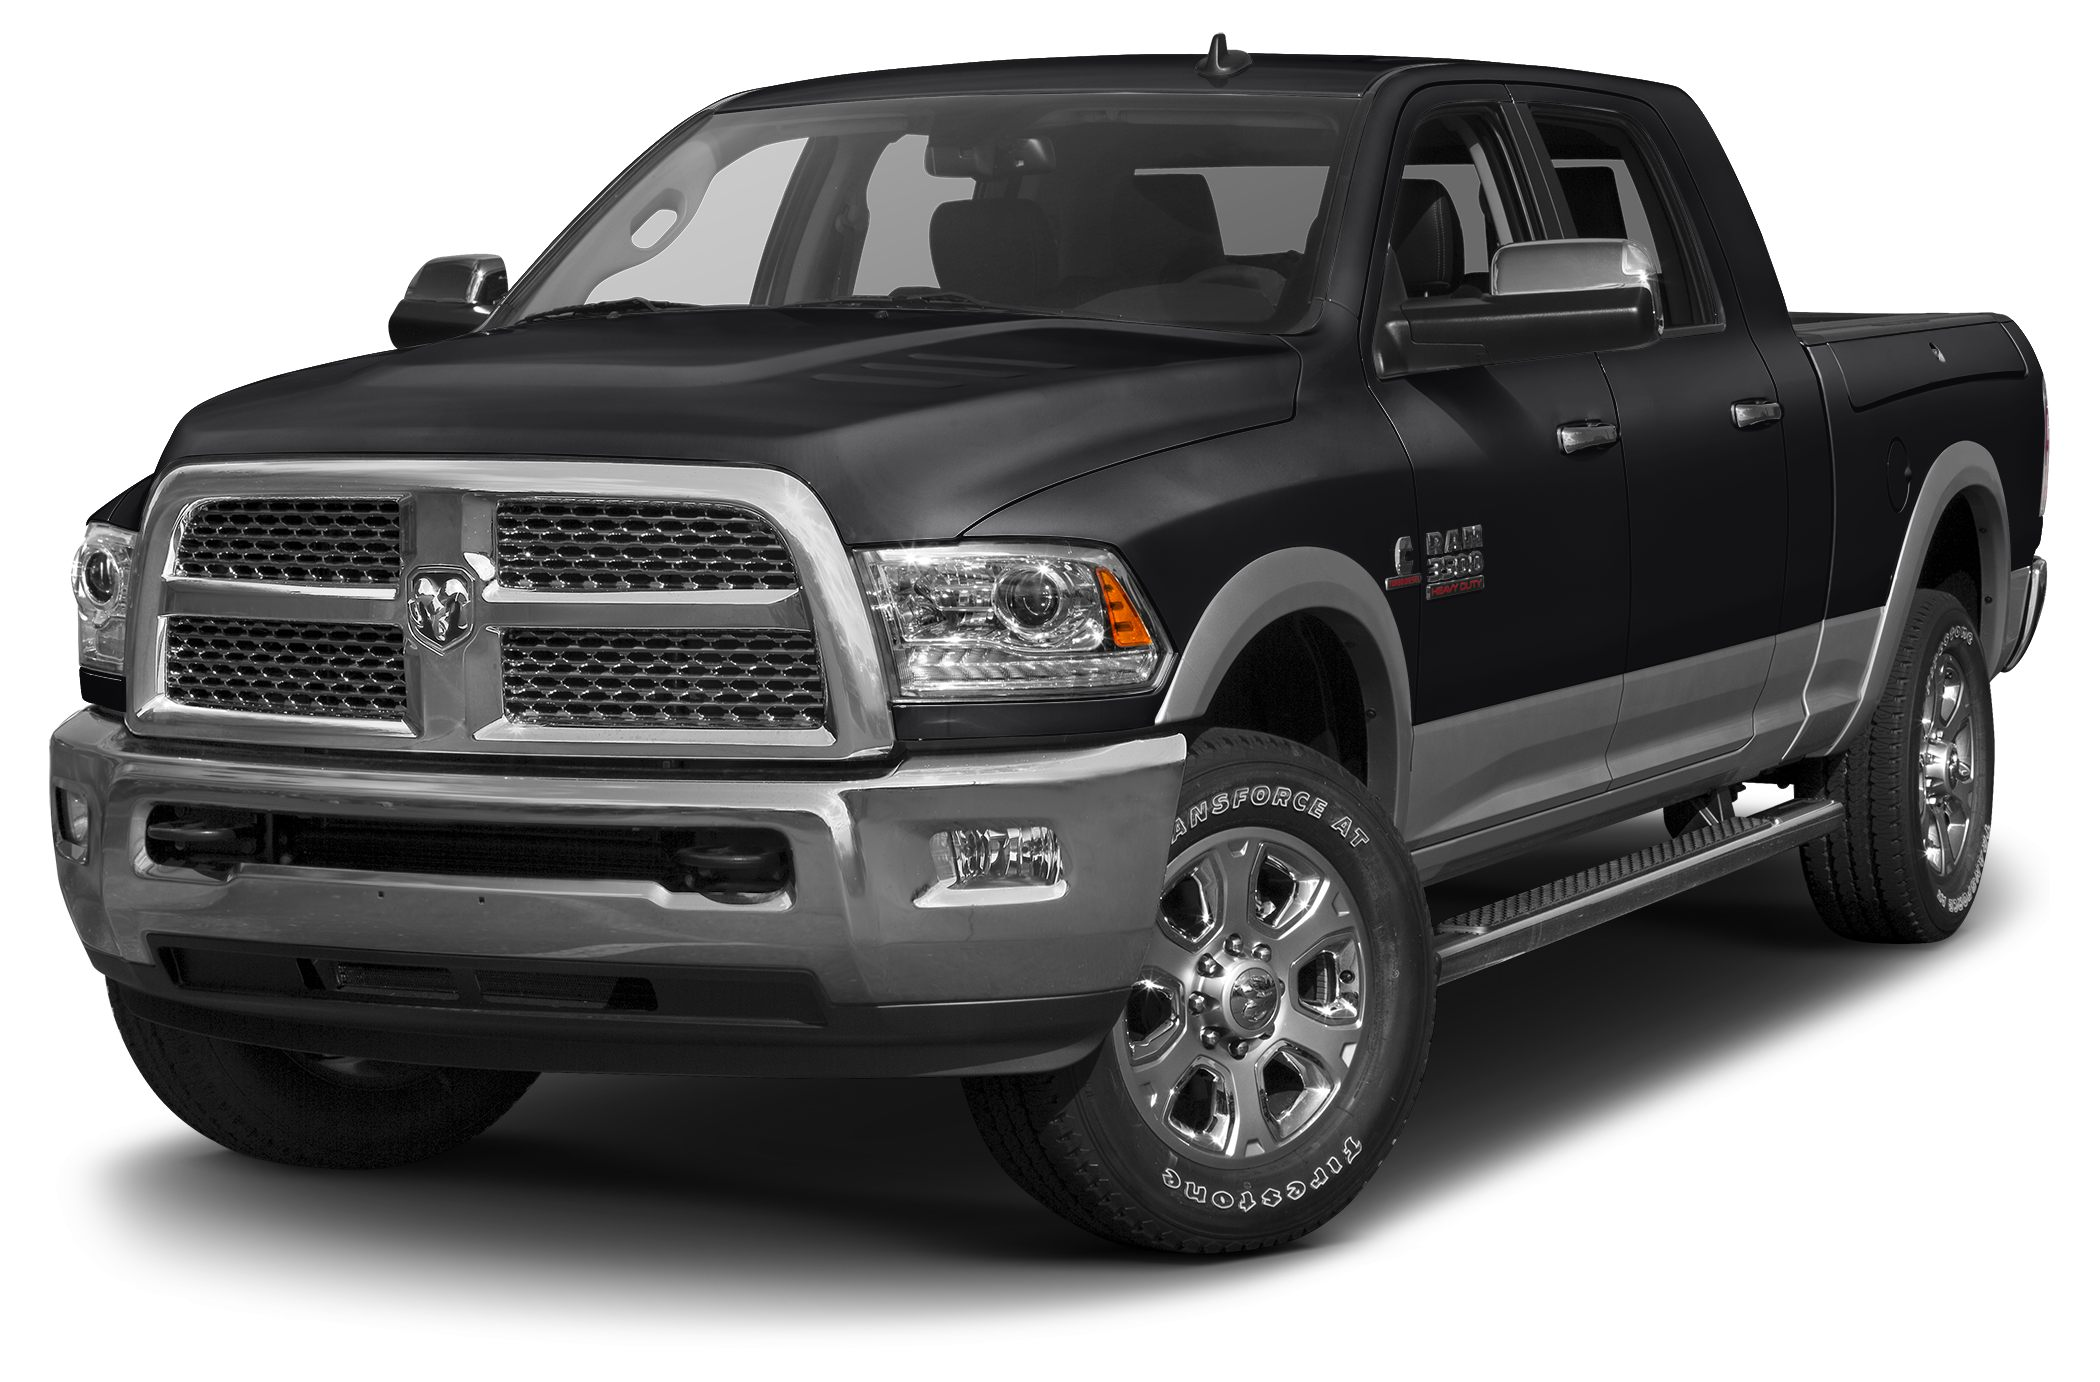 2016 RAM 3500 Laramie Longhorn Heated Leather Seats Sunroof Navigation Bed Liner Trailer Hitch